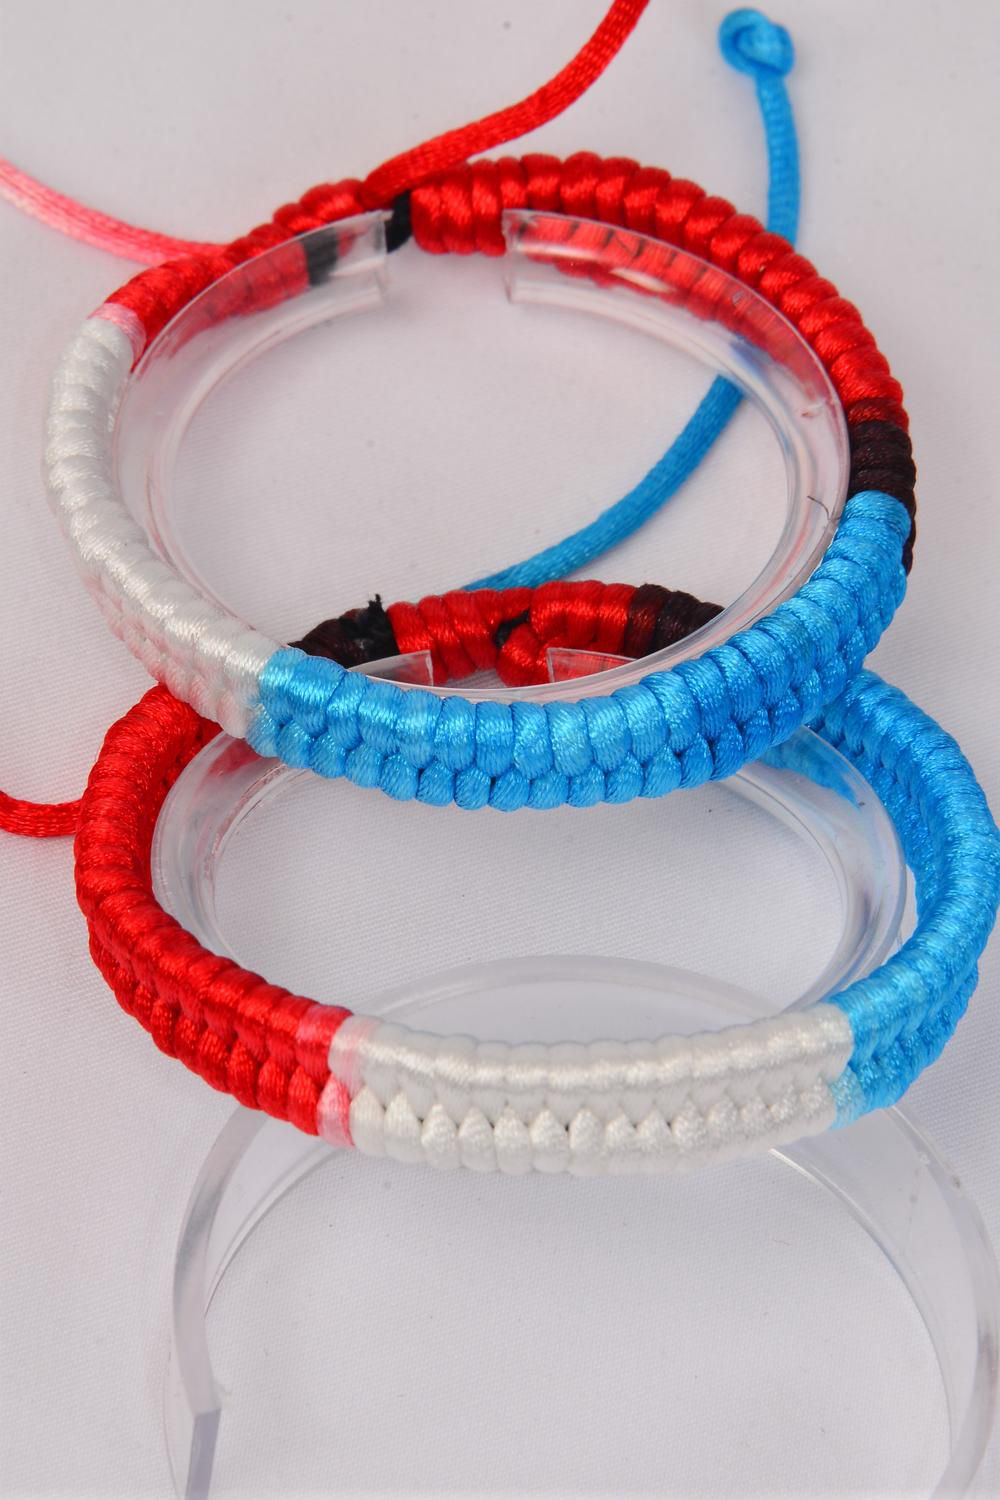 Bracelet Woven Style Ombre Adjustable/DZ **Unisex** Adjustable,Hang tag & OPP Bag & UPC Code